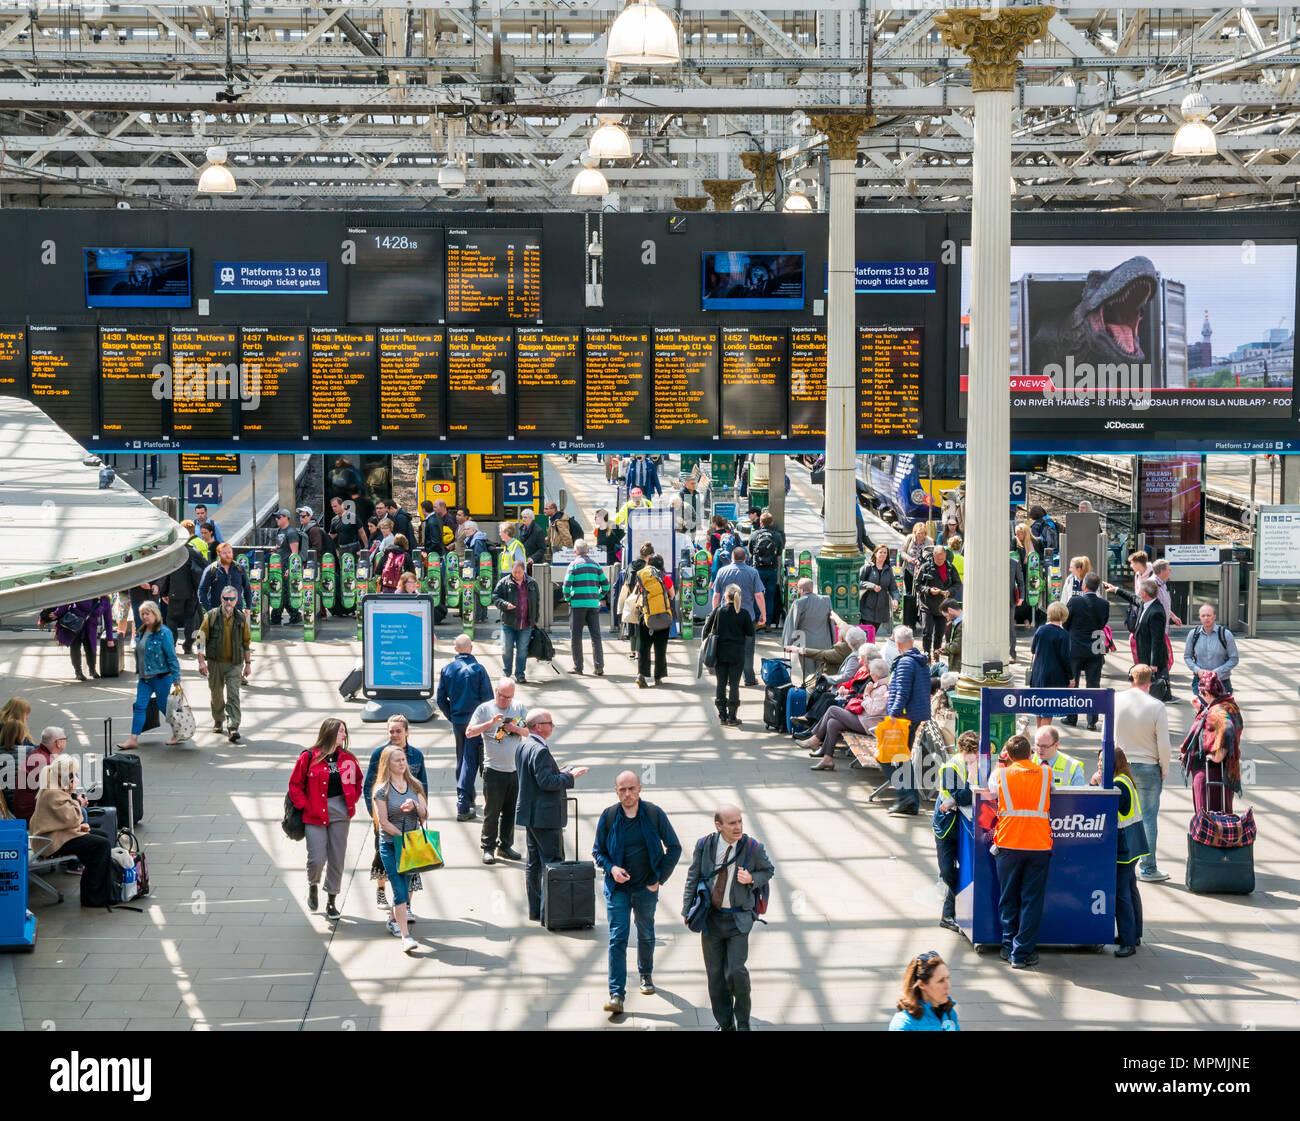 Passengers in busy main concourse, Waverley Railway Station, Edinburgh, Scotland, UK with Jurassic Park Isla Nublar on giant TV screen - Stock Image